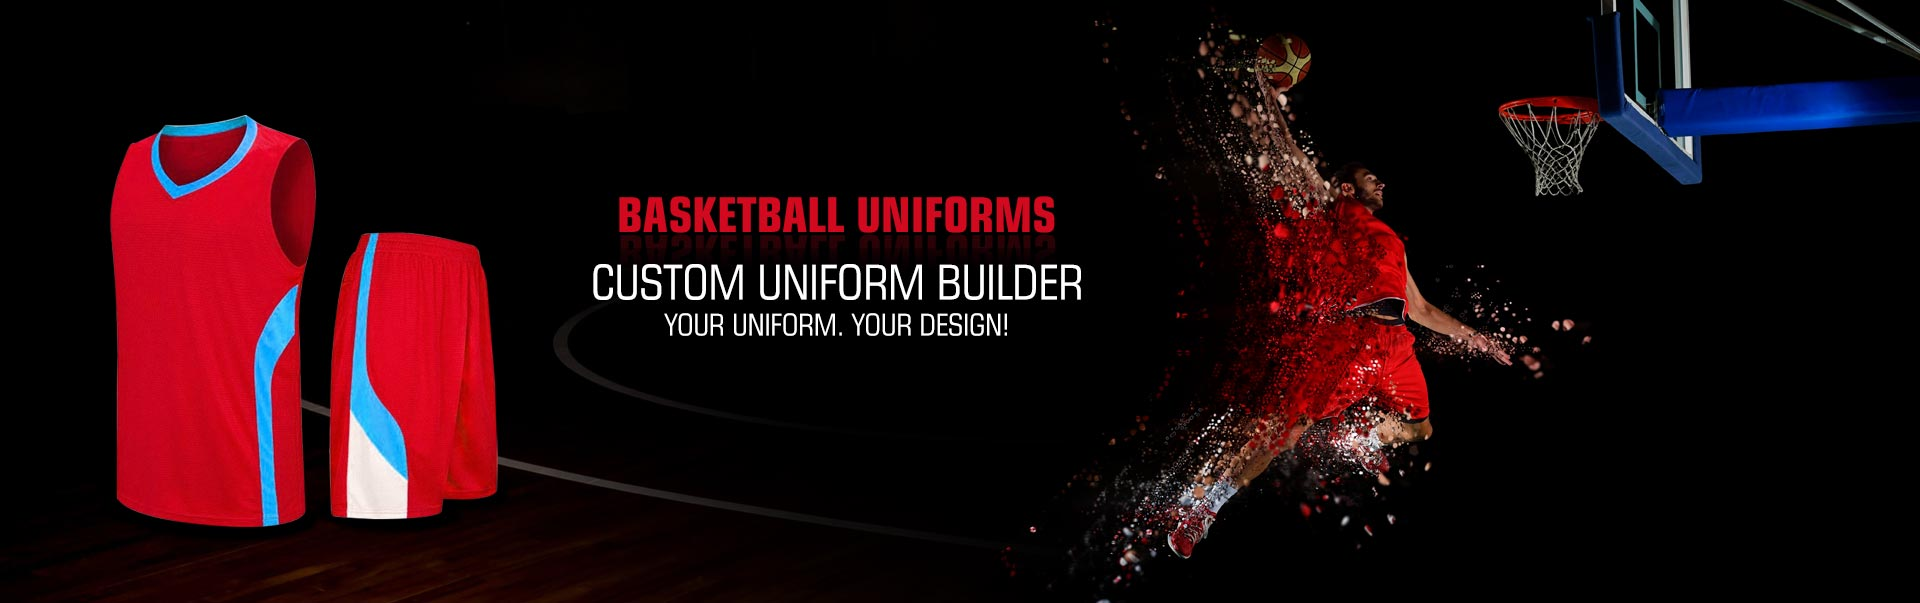 Basketball Uniforms Wholesaler, Suppliers in Les Abymes